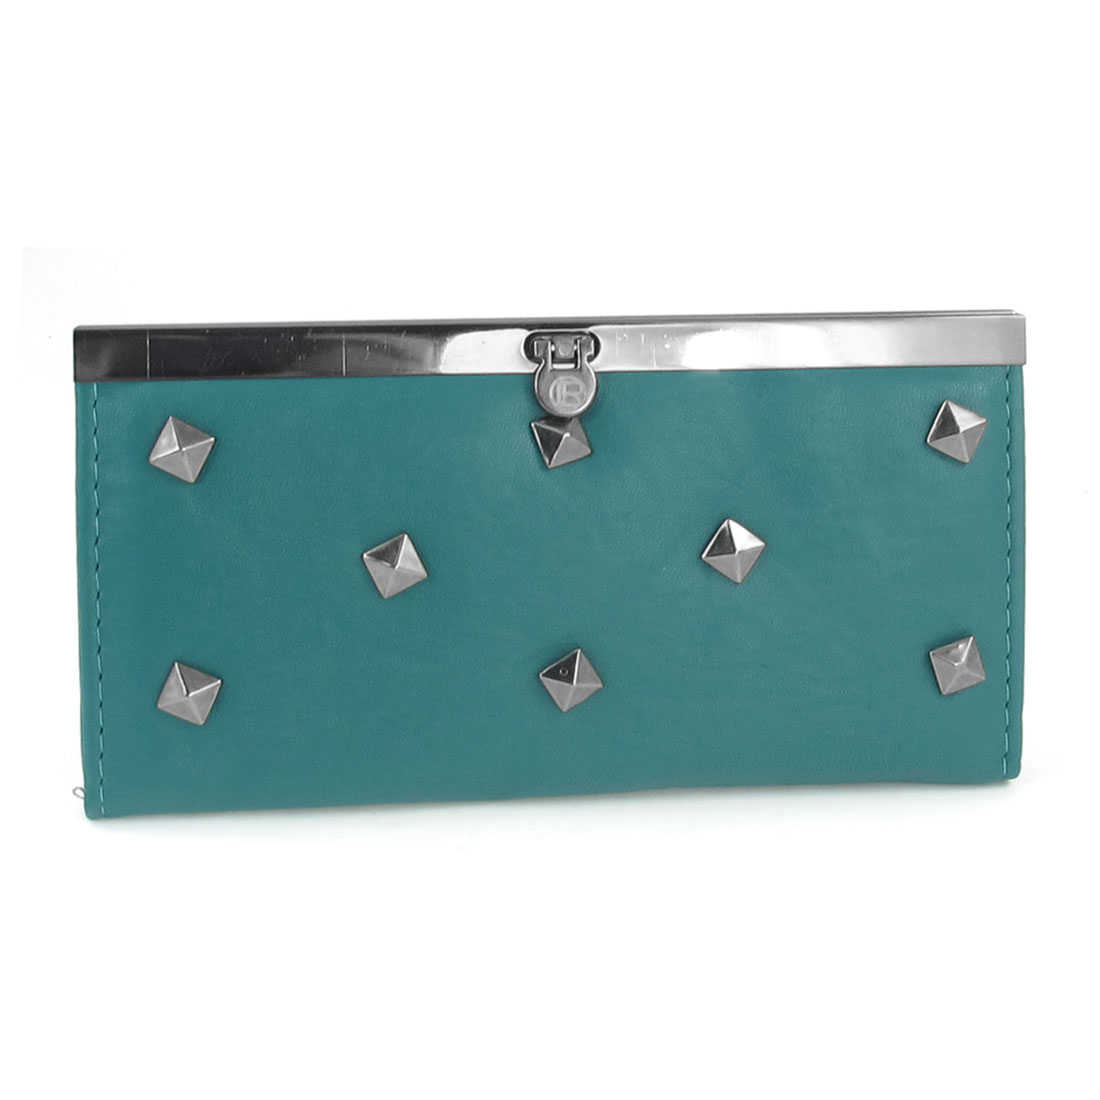 "7.5"" Length Metal Stub Ornament Rectangle Shaped Teal Blue Purse for Lady"